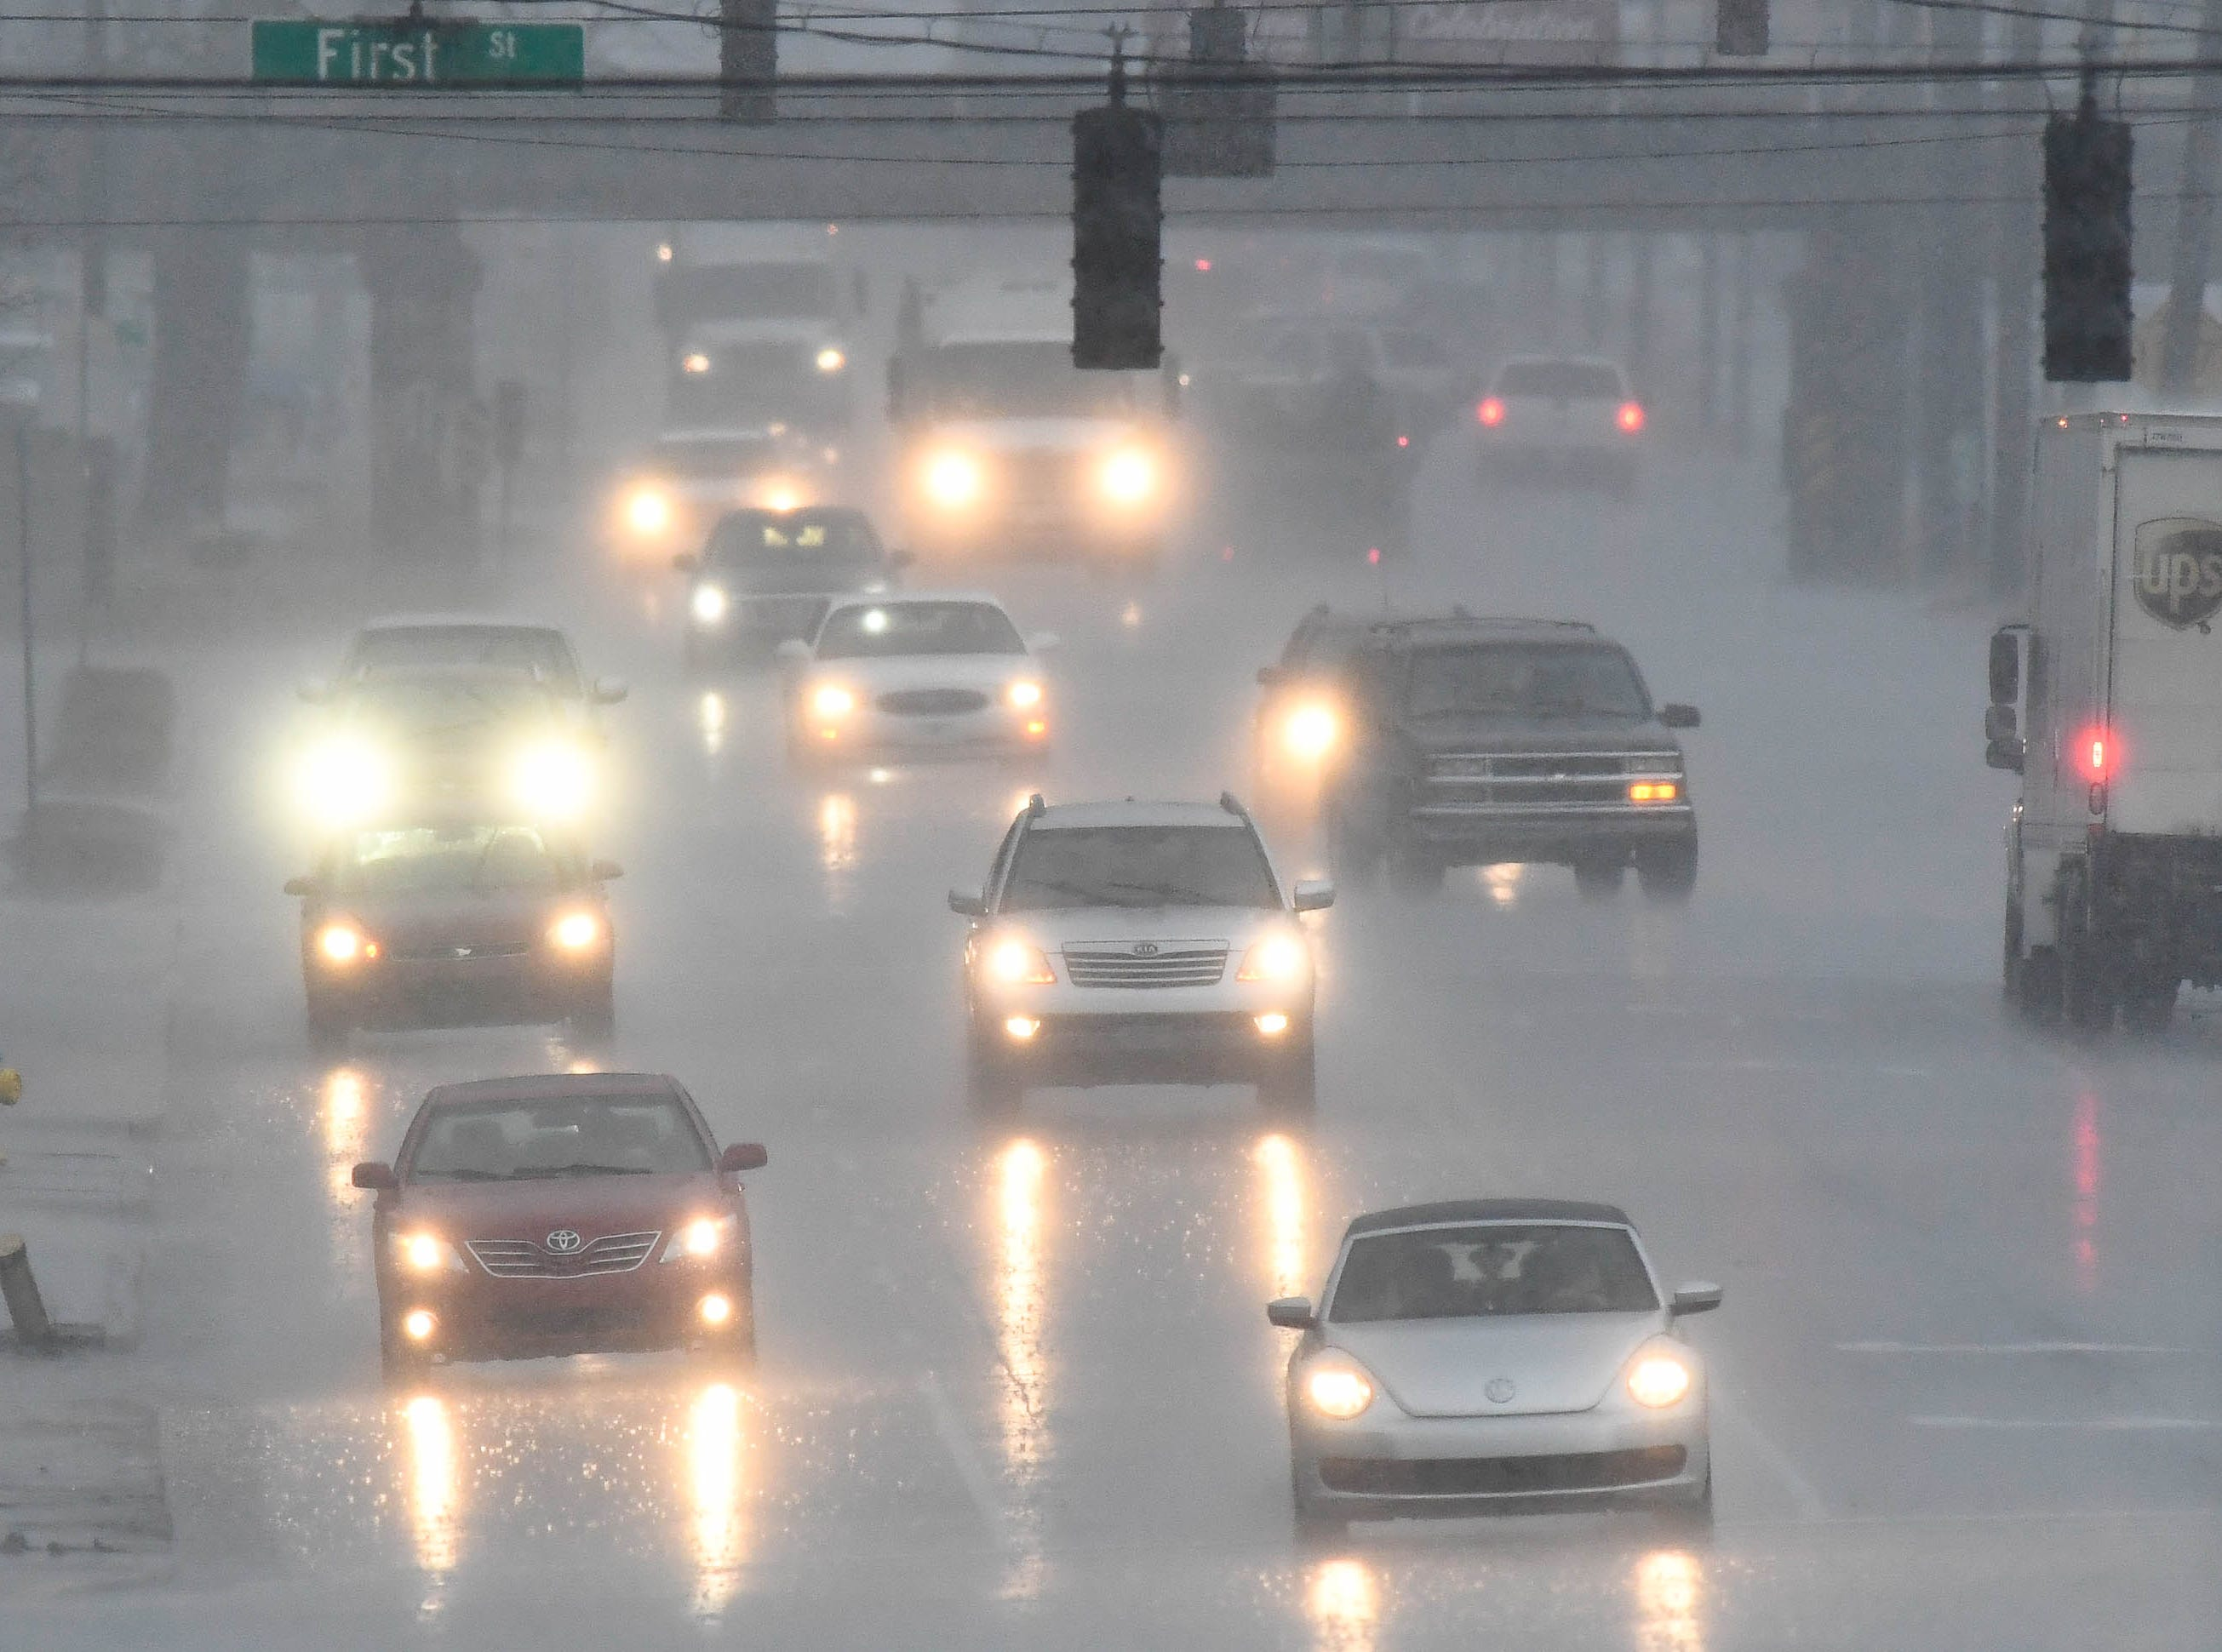 Traffic on North Green Street, in Henderson, during a mid-day downpour as a major storm system makes its way across the area Thursday, February 7, 2019.